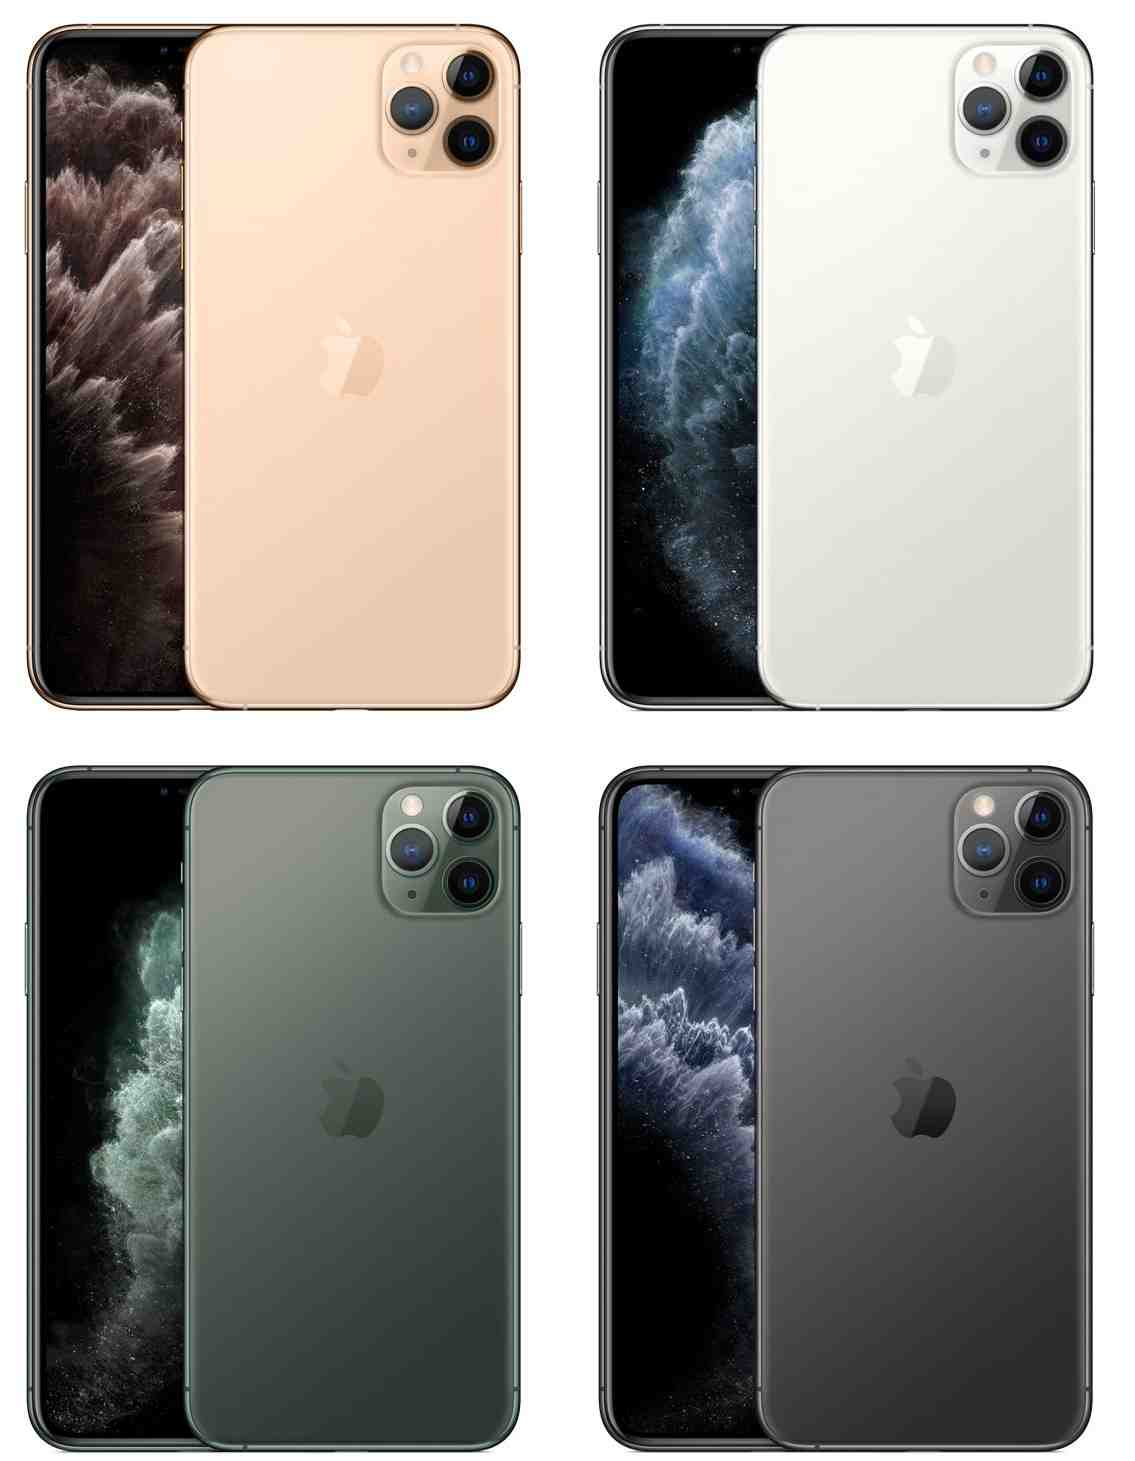 Comment ouvrir iPhone 11 Pro Max ?